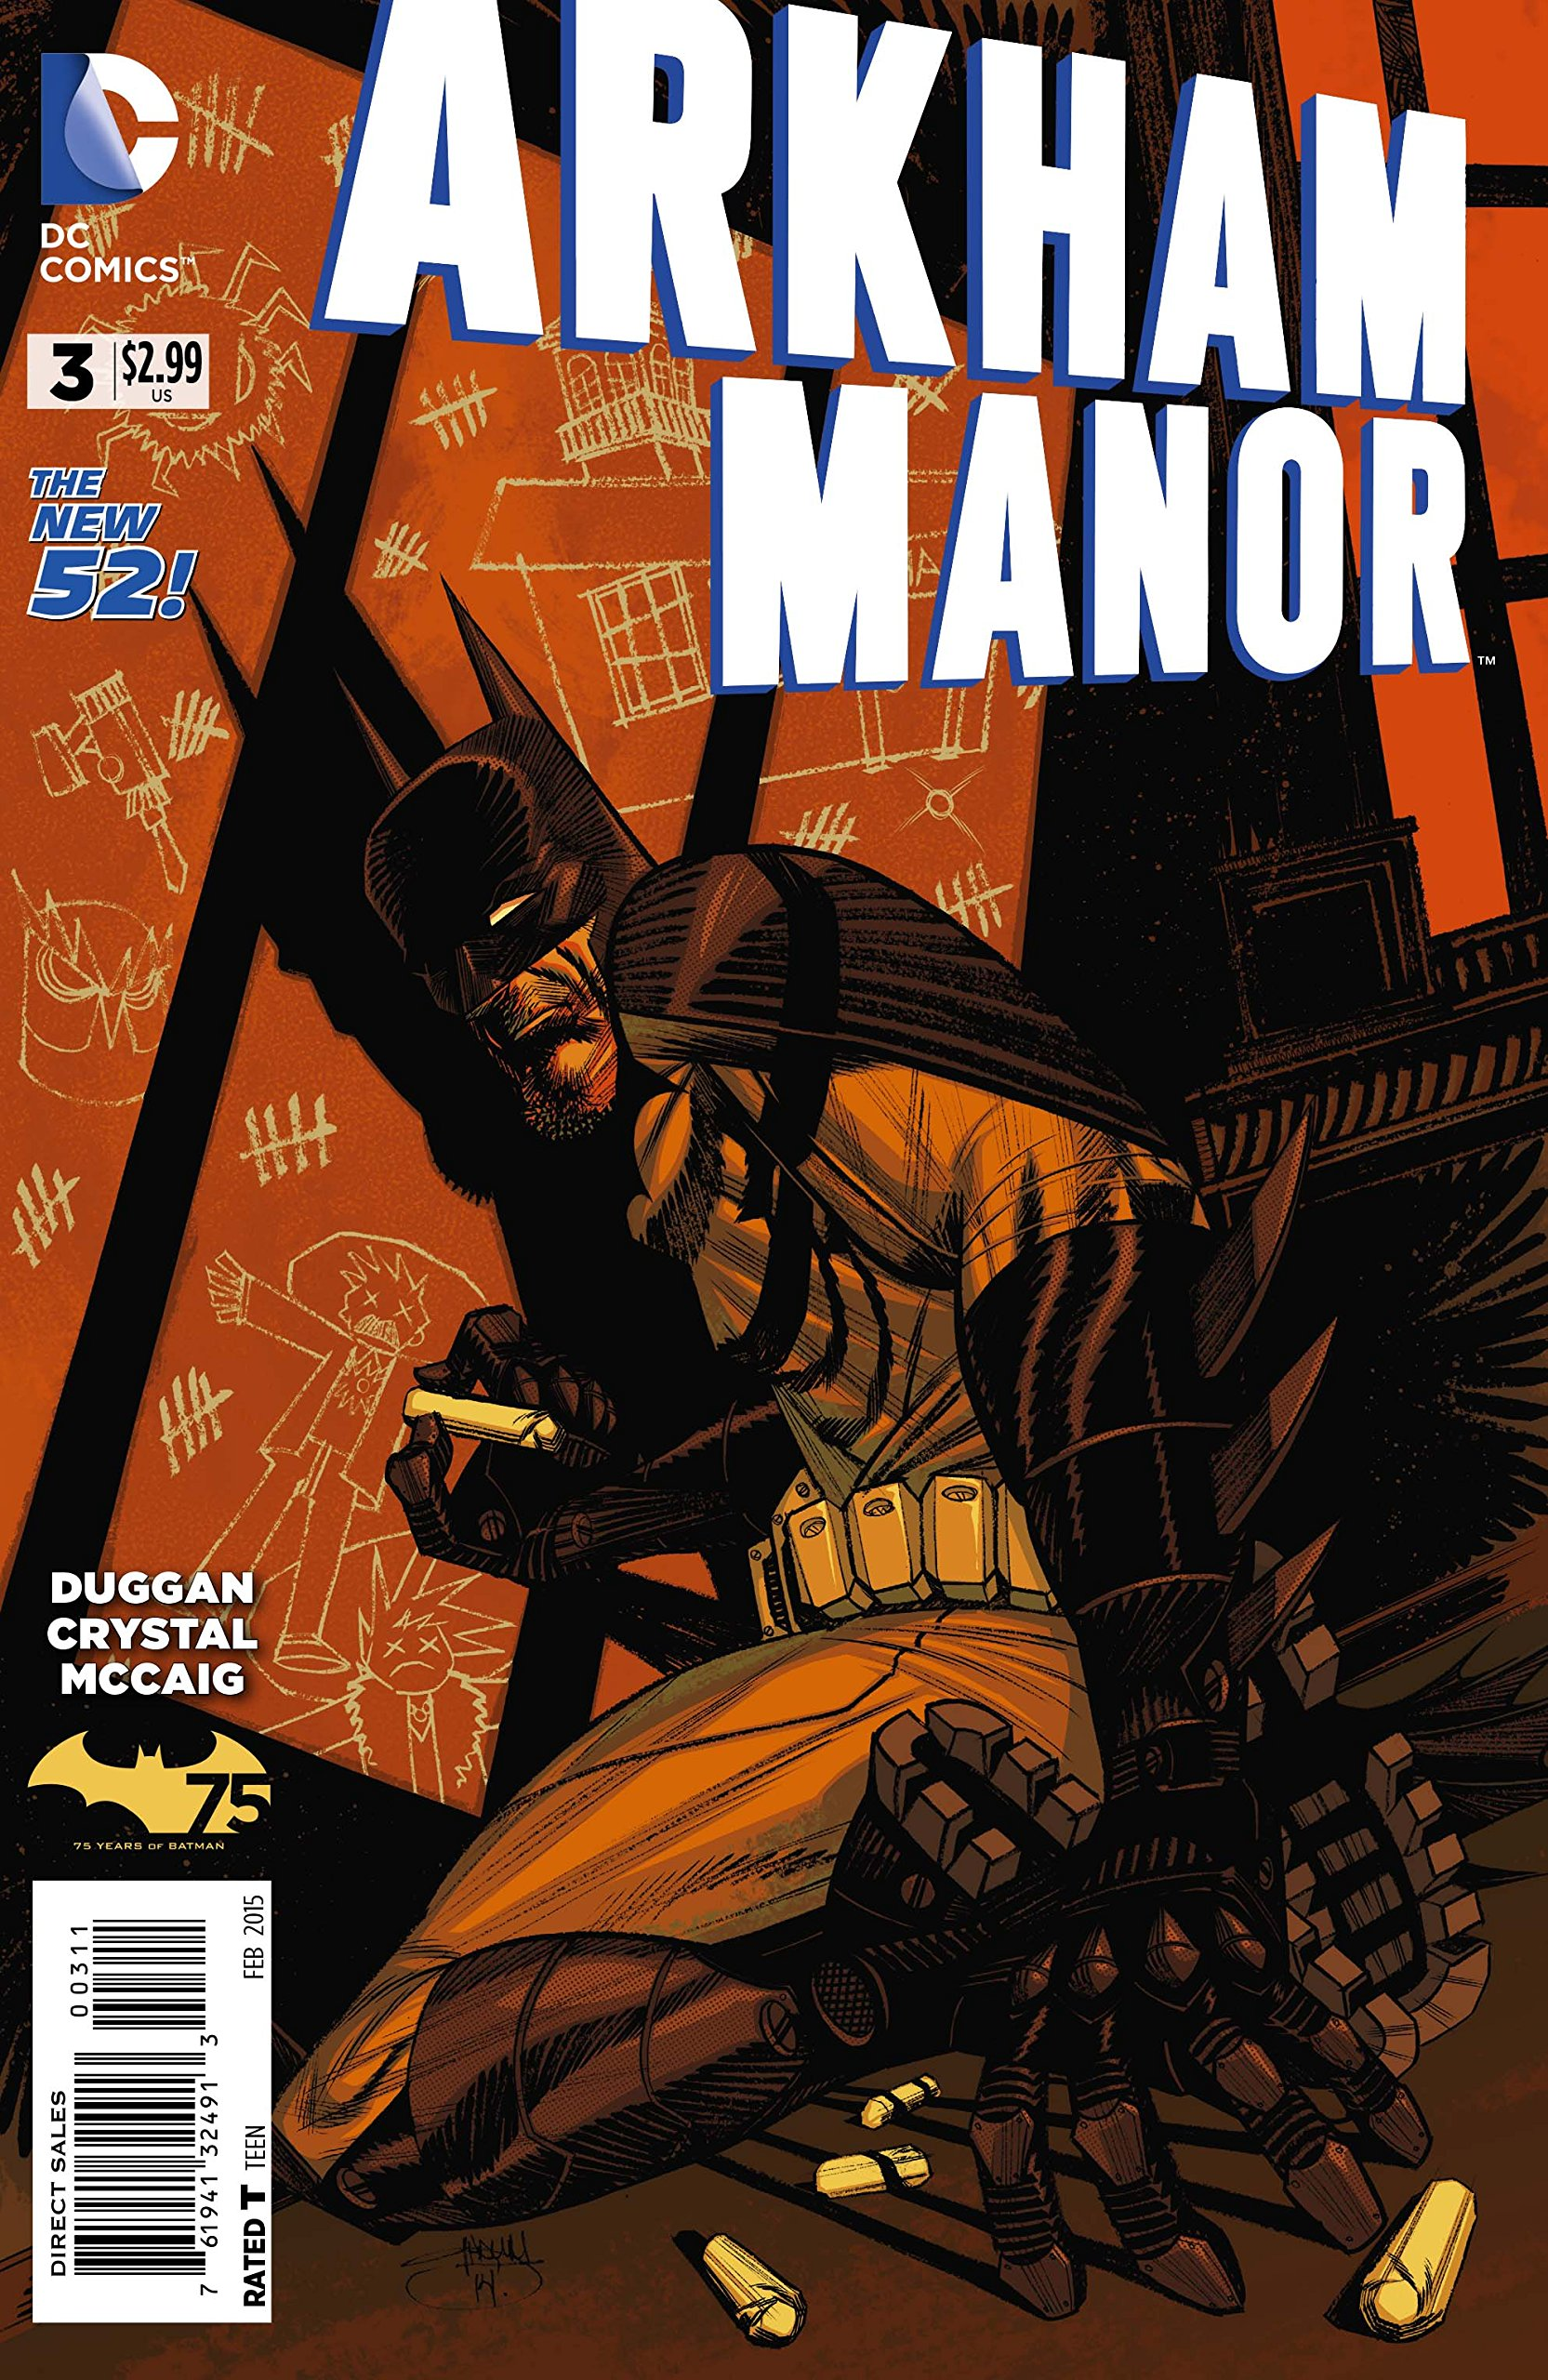 Read Online Arkham Manor #3 ebook